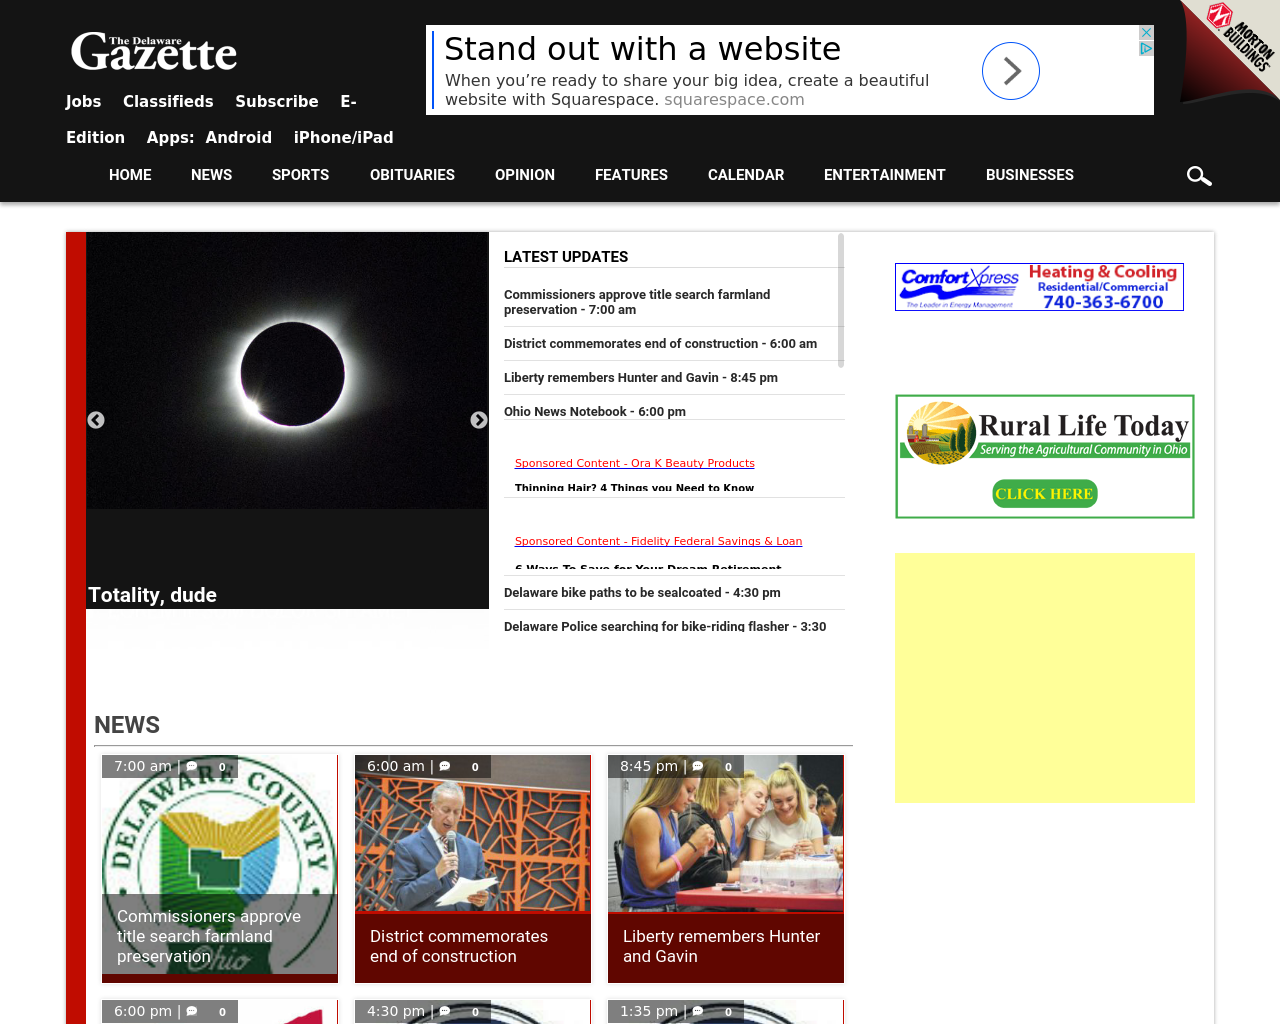 The-Delaware-Gazette-Advertising-Reviews-Pricing